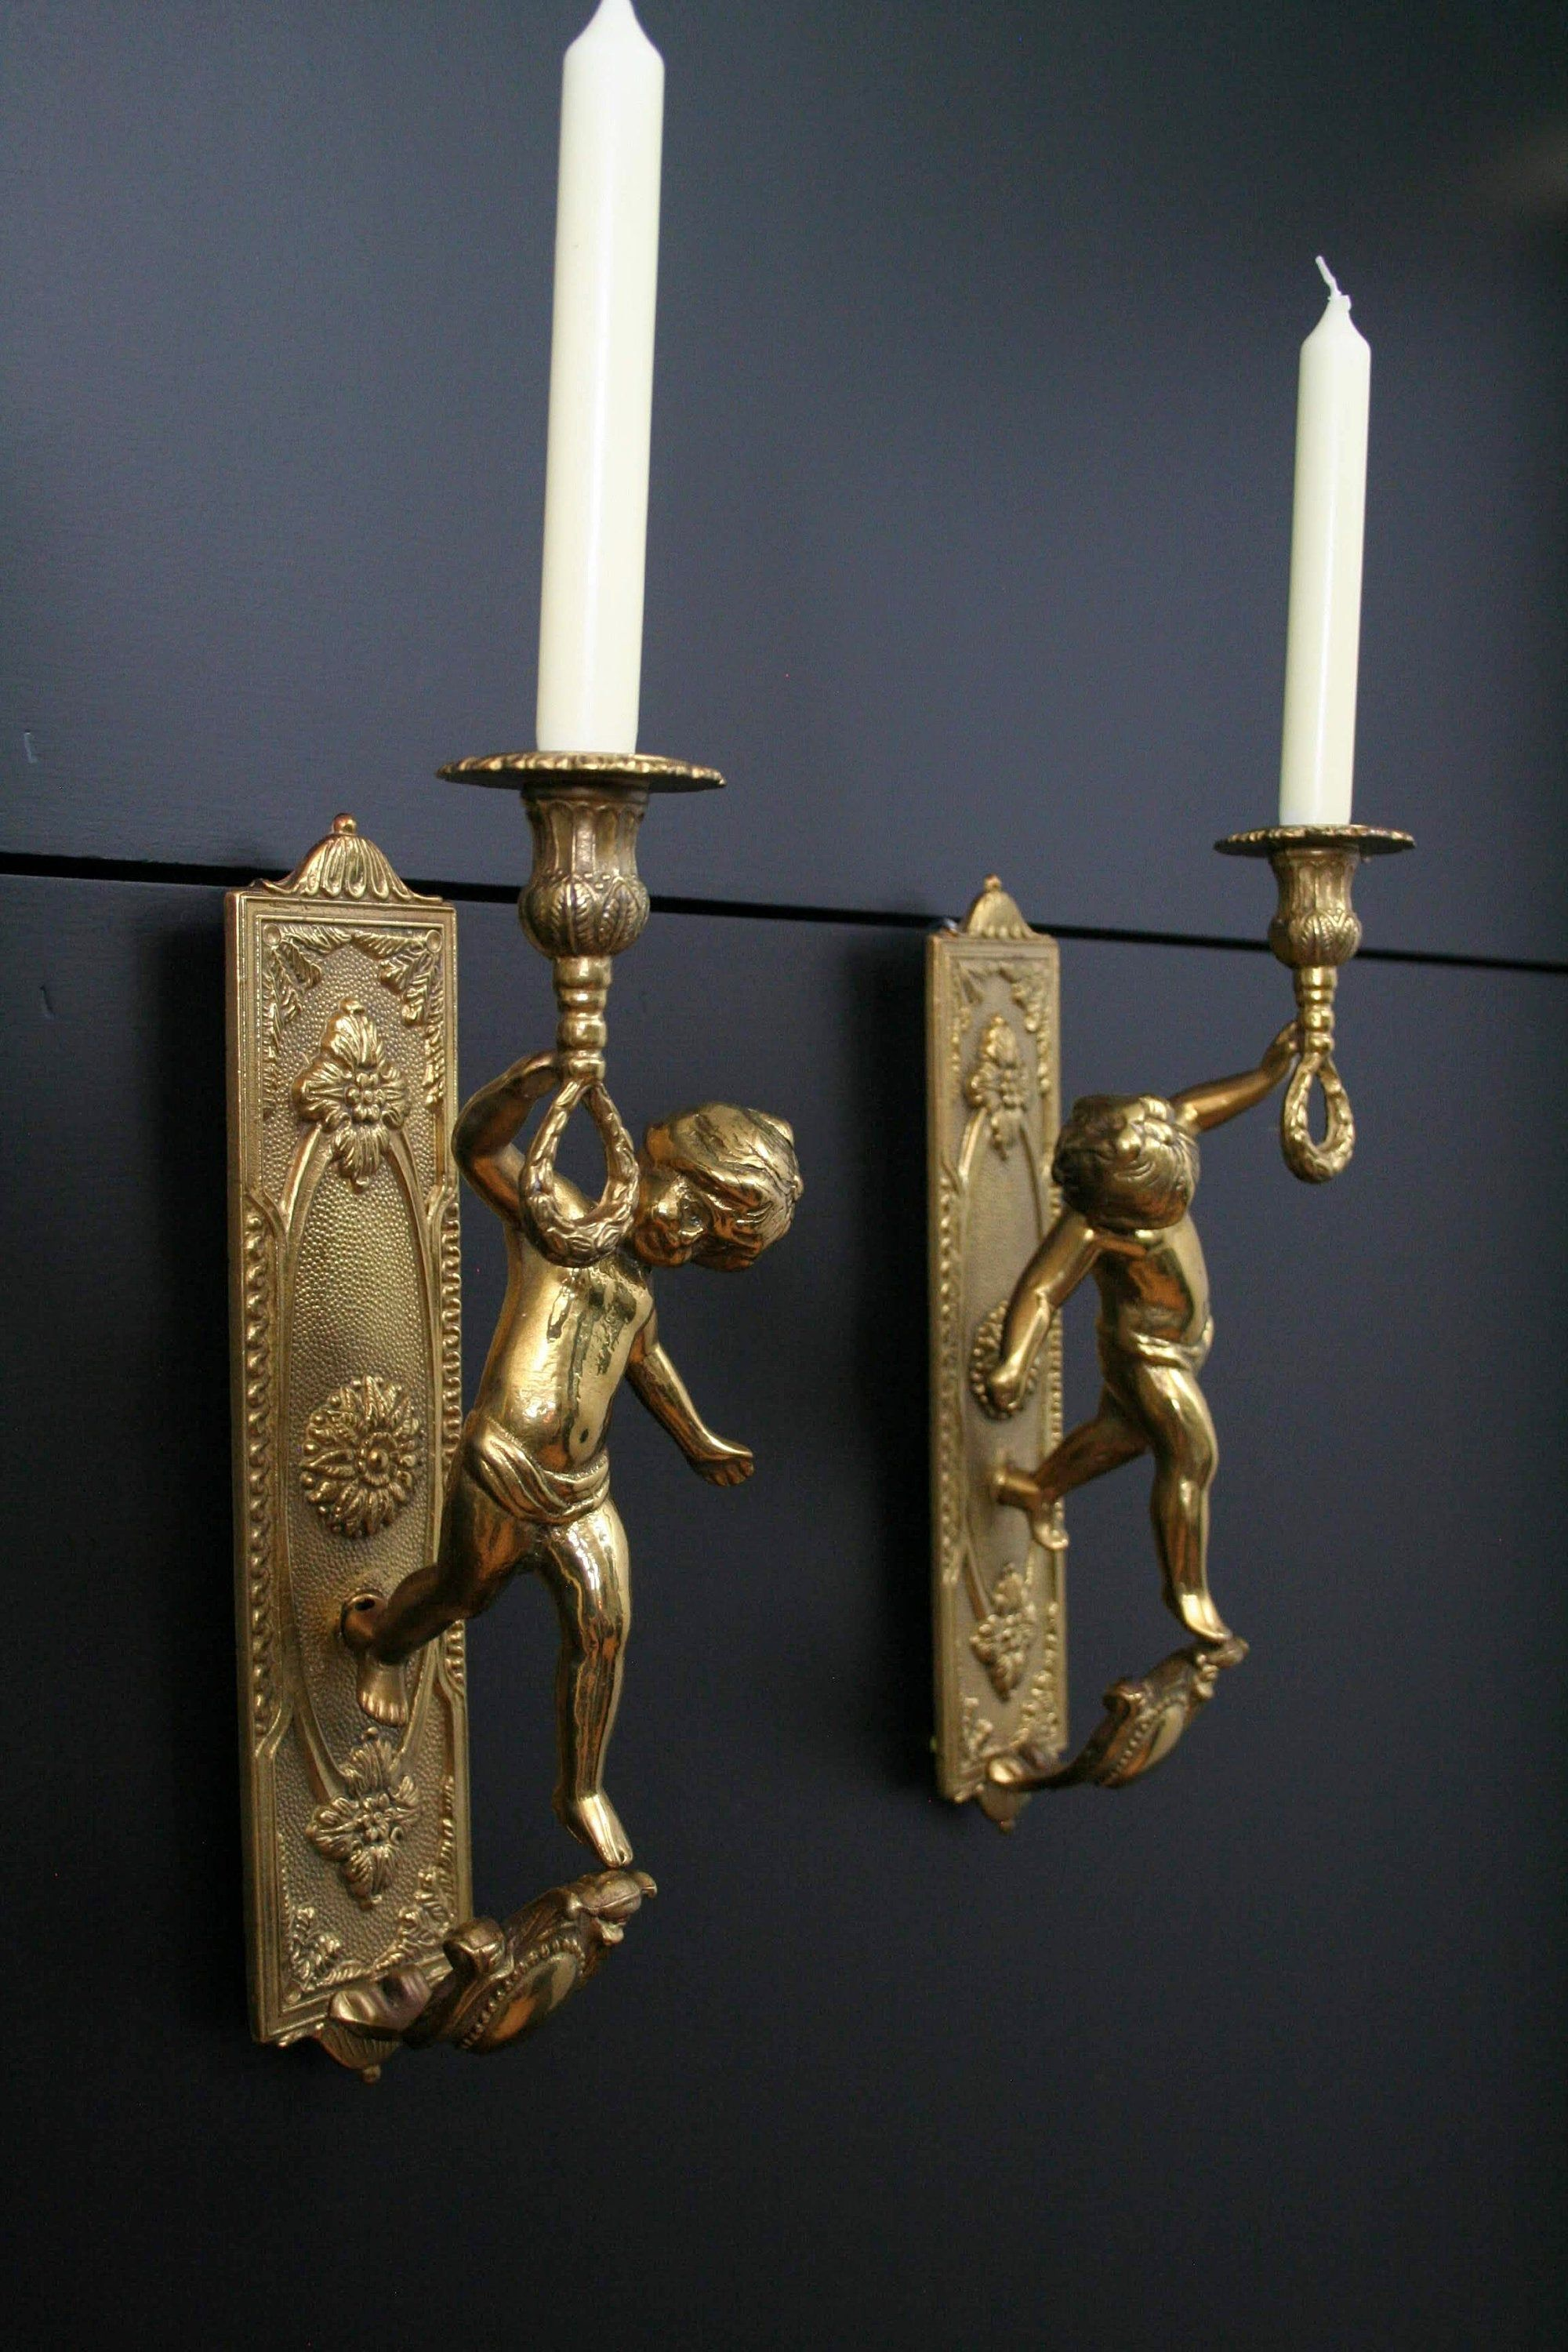 French Decor Candle Wall Sconces Cherub Brass Sconces Wall Candle Holders Unique Gift Ideas Brass Candle Holders Vintage Home Decor Sconce Wall Candle Holders Wall Candles Brass Candle Holders Vintage